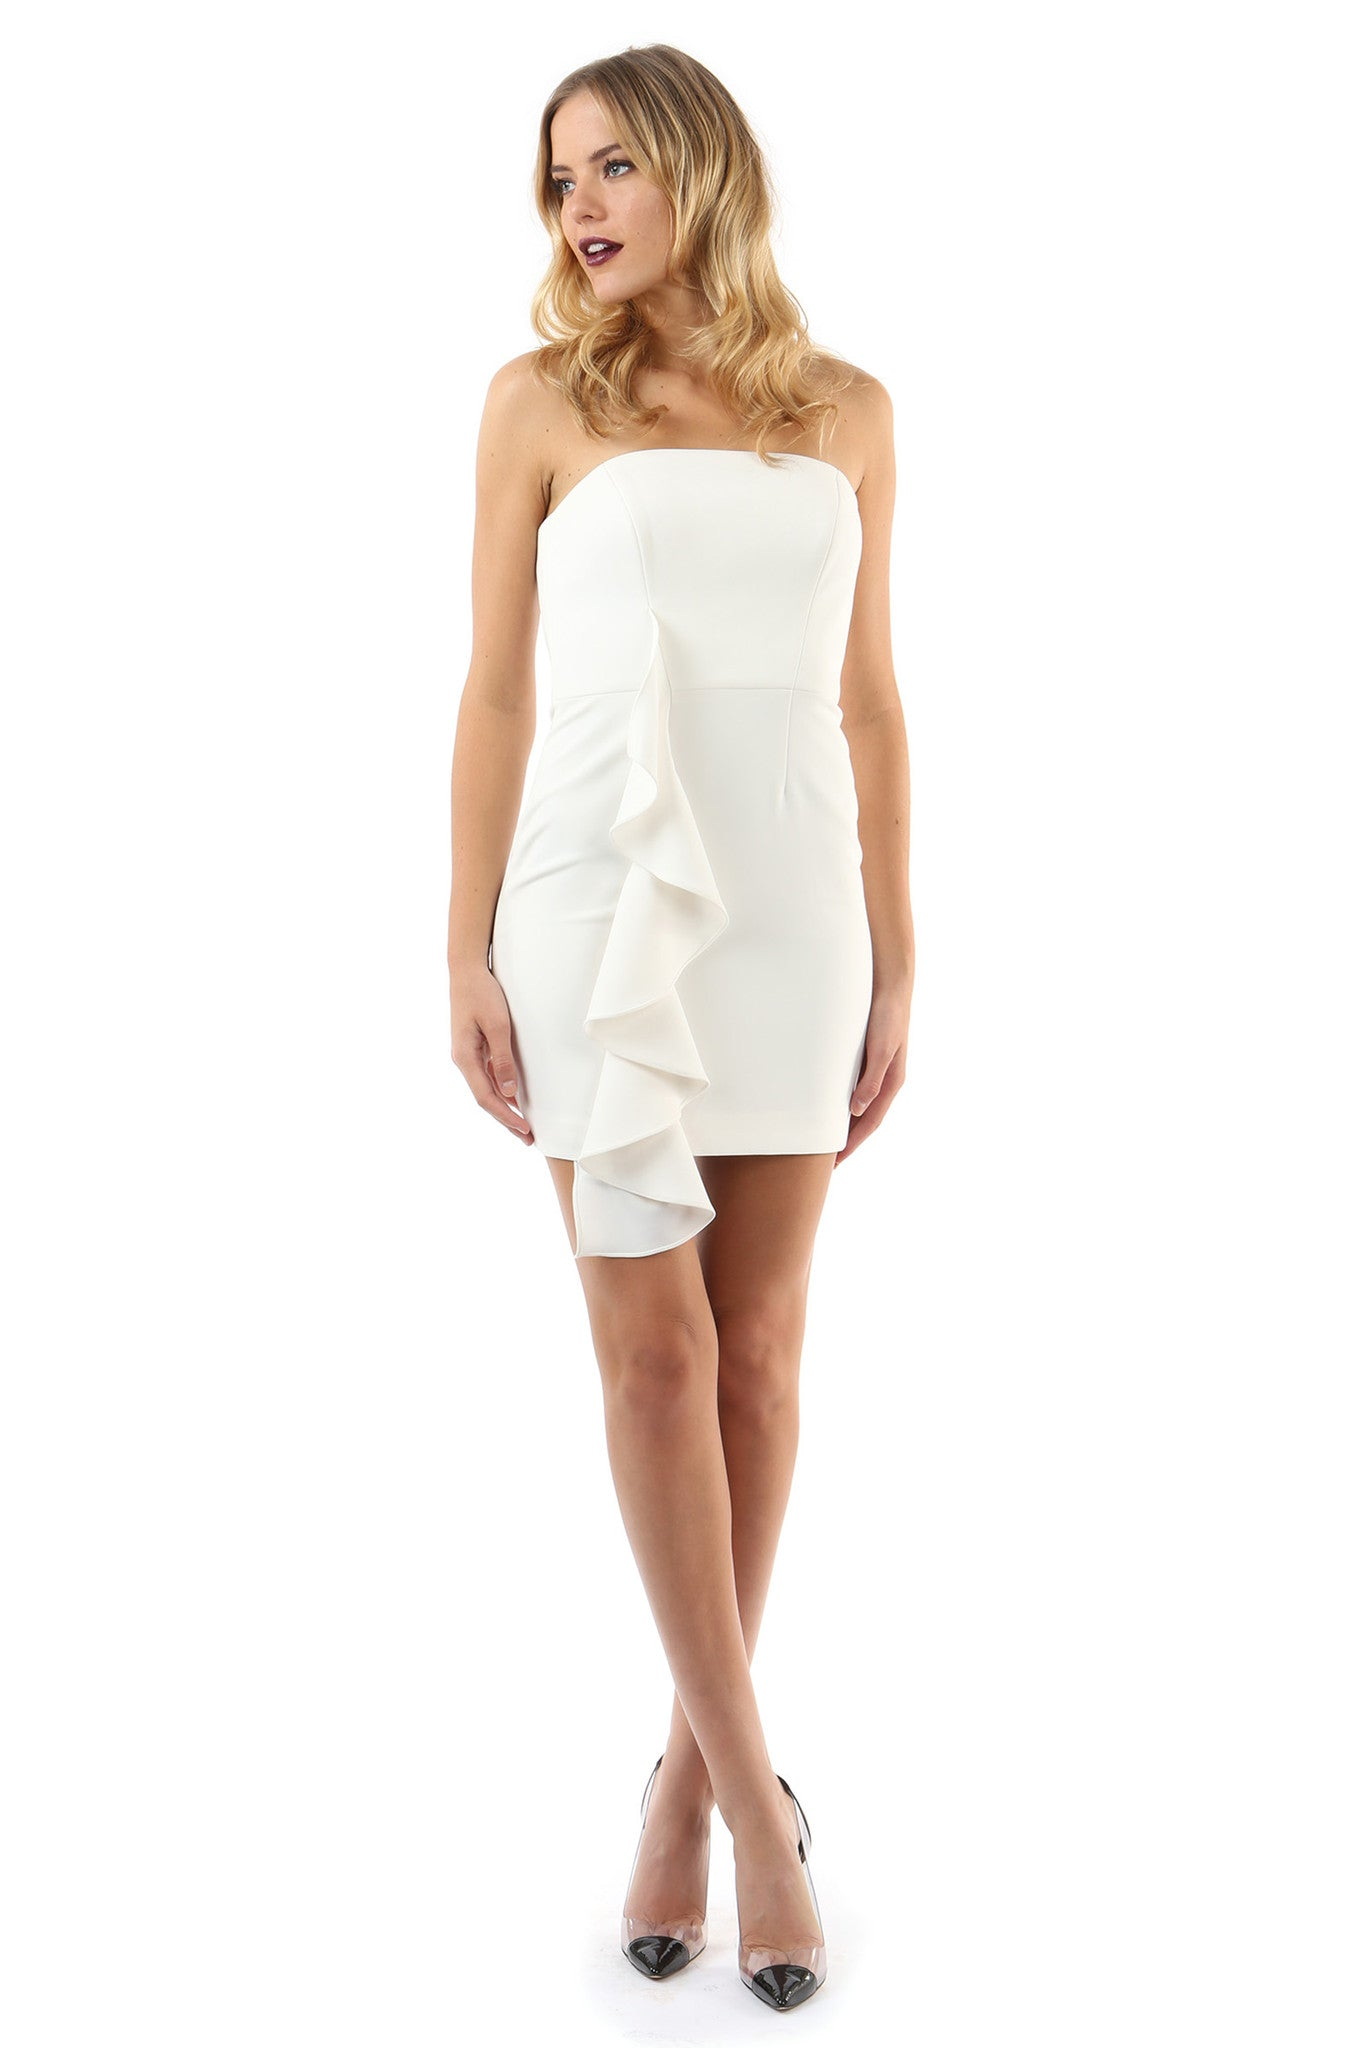 Jay Godfrey Ivory Strapless Ruffle Mini Dress - Front View